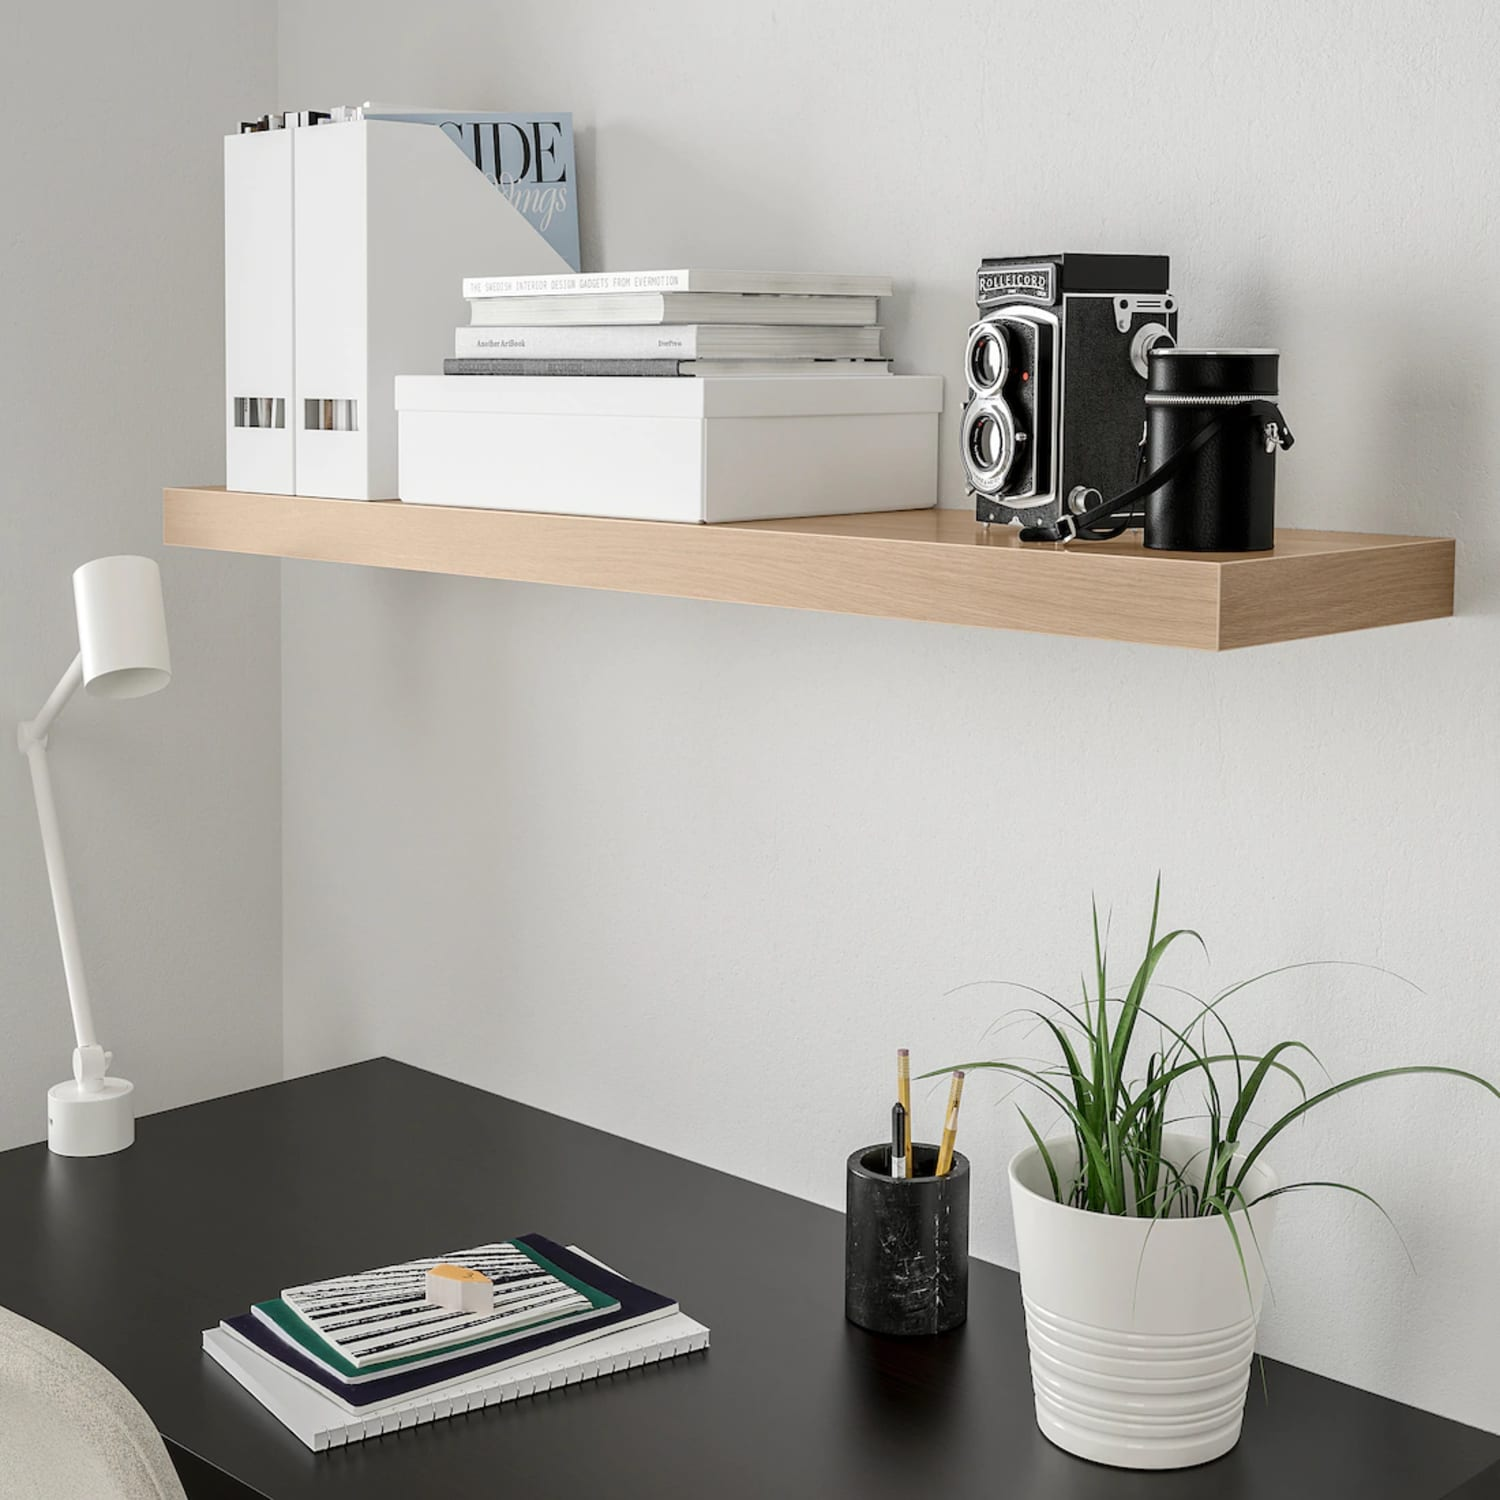 6 IKEA LACK Shelf Hacks that Definitely Don't Lack in Creativity